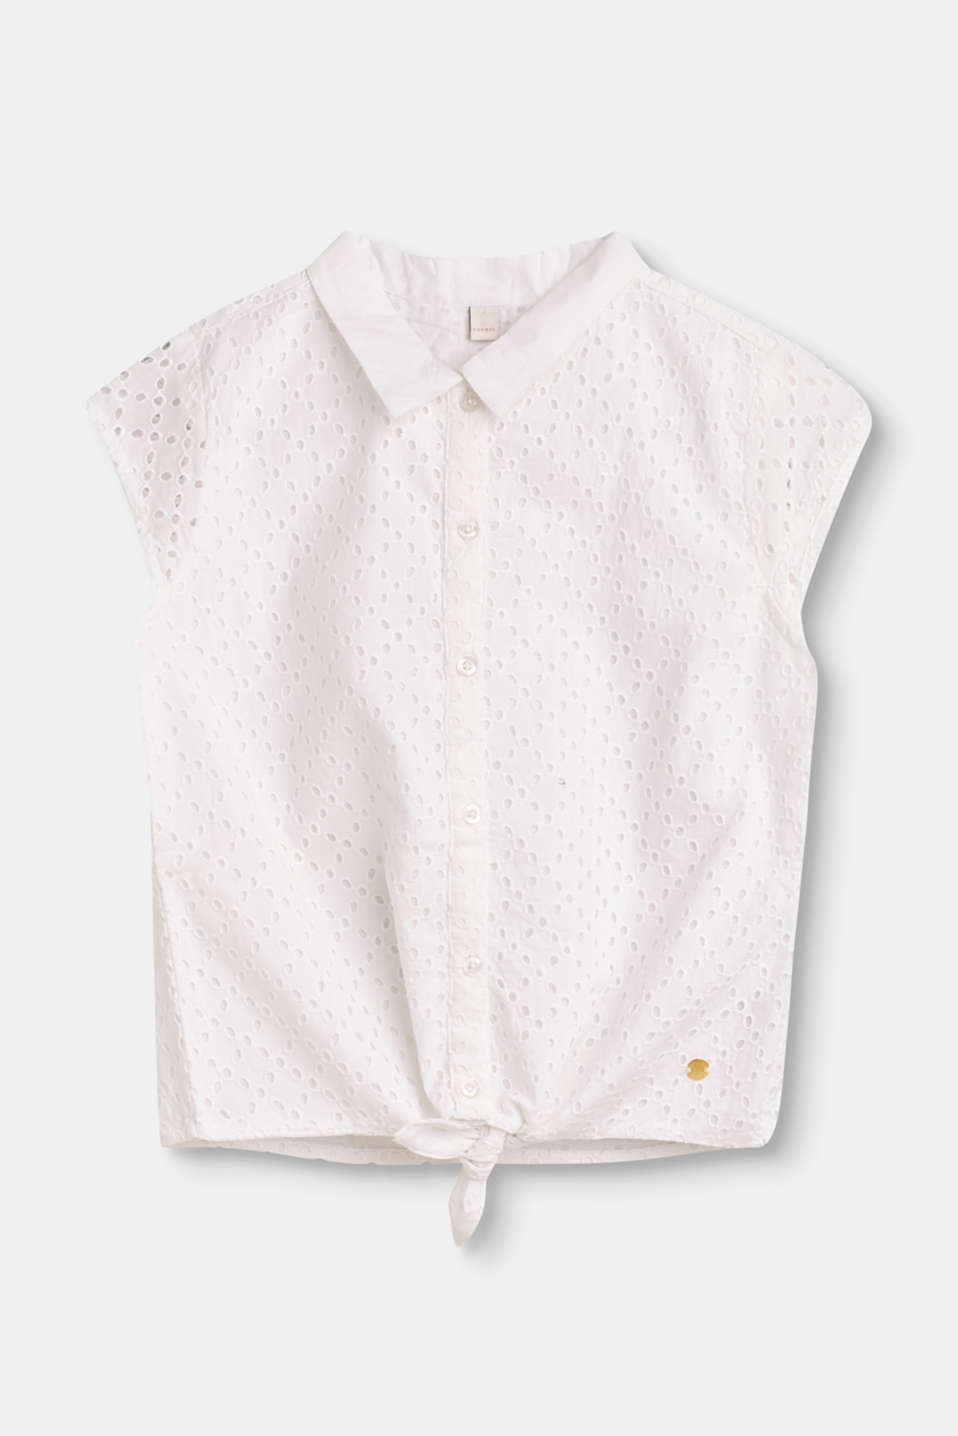 Esprit - Cotton blouse designed for tying in a knot with broderie anglaise